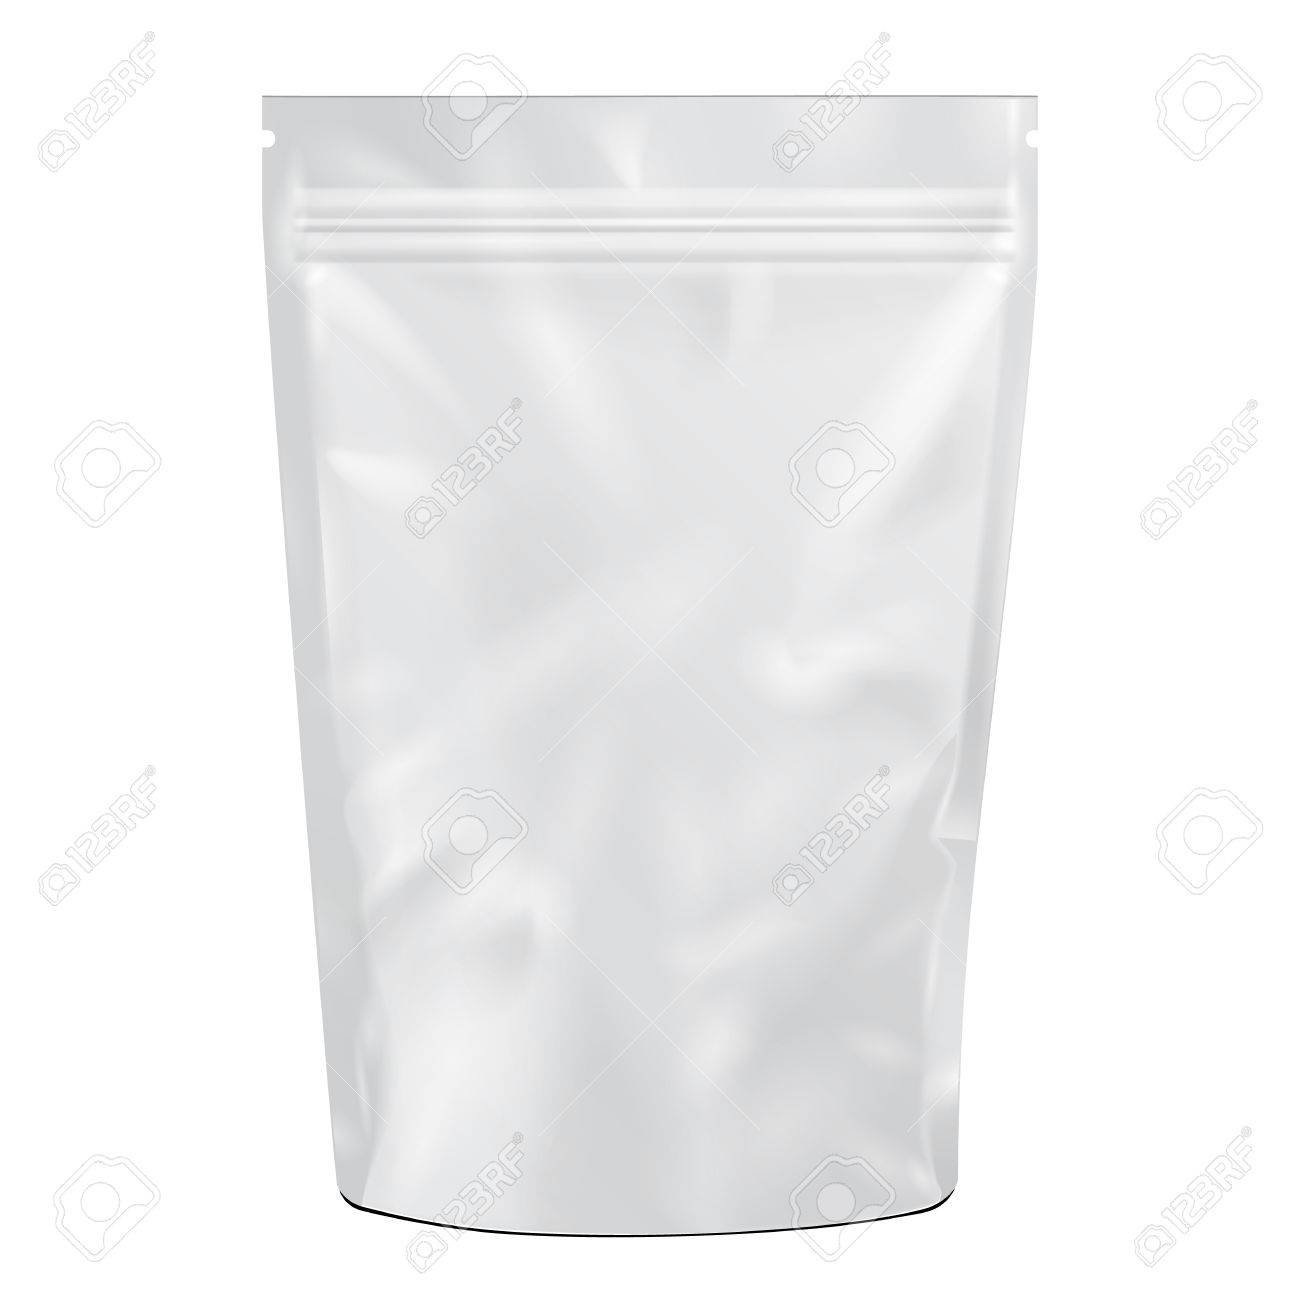 White Blank Foil Food Or Drink Doy pack Bag Packaging. Illustration Isolated On White Background. Mock Up, Mockup Template Ready For Your Design. Vector - 57793774